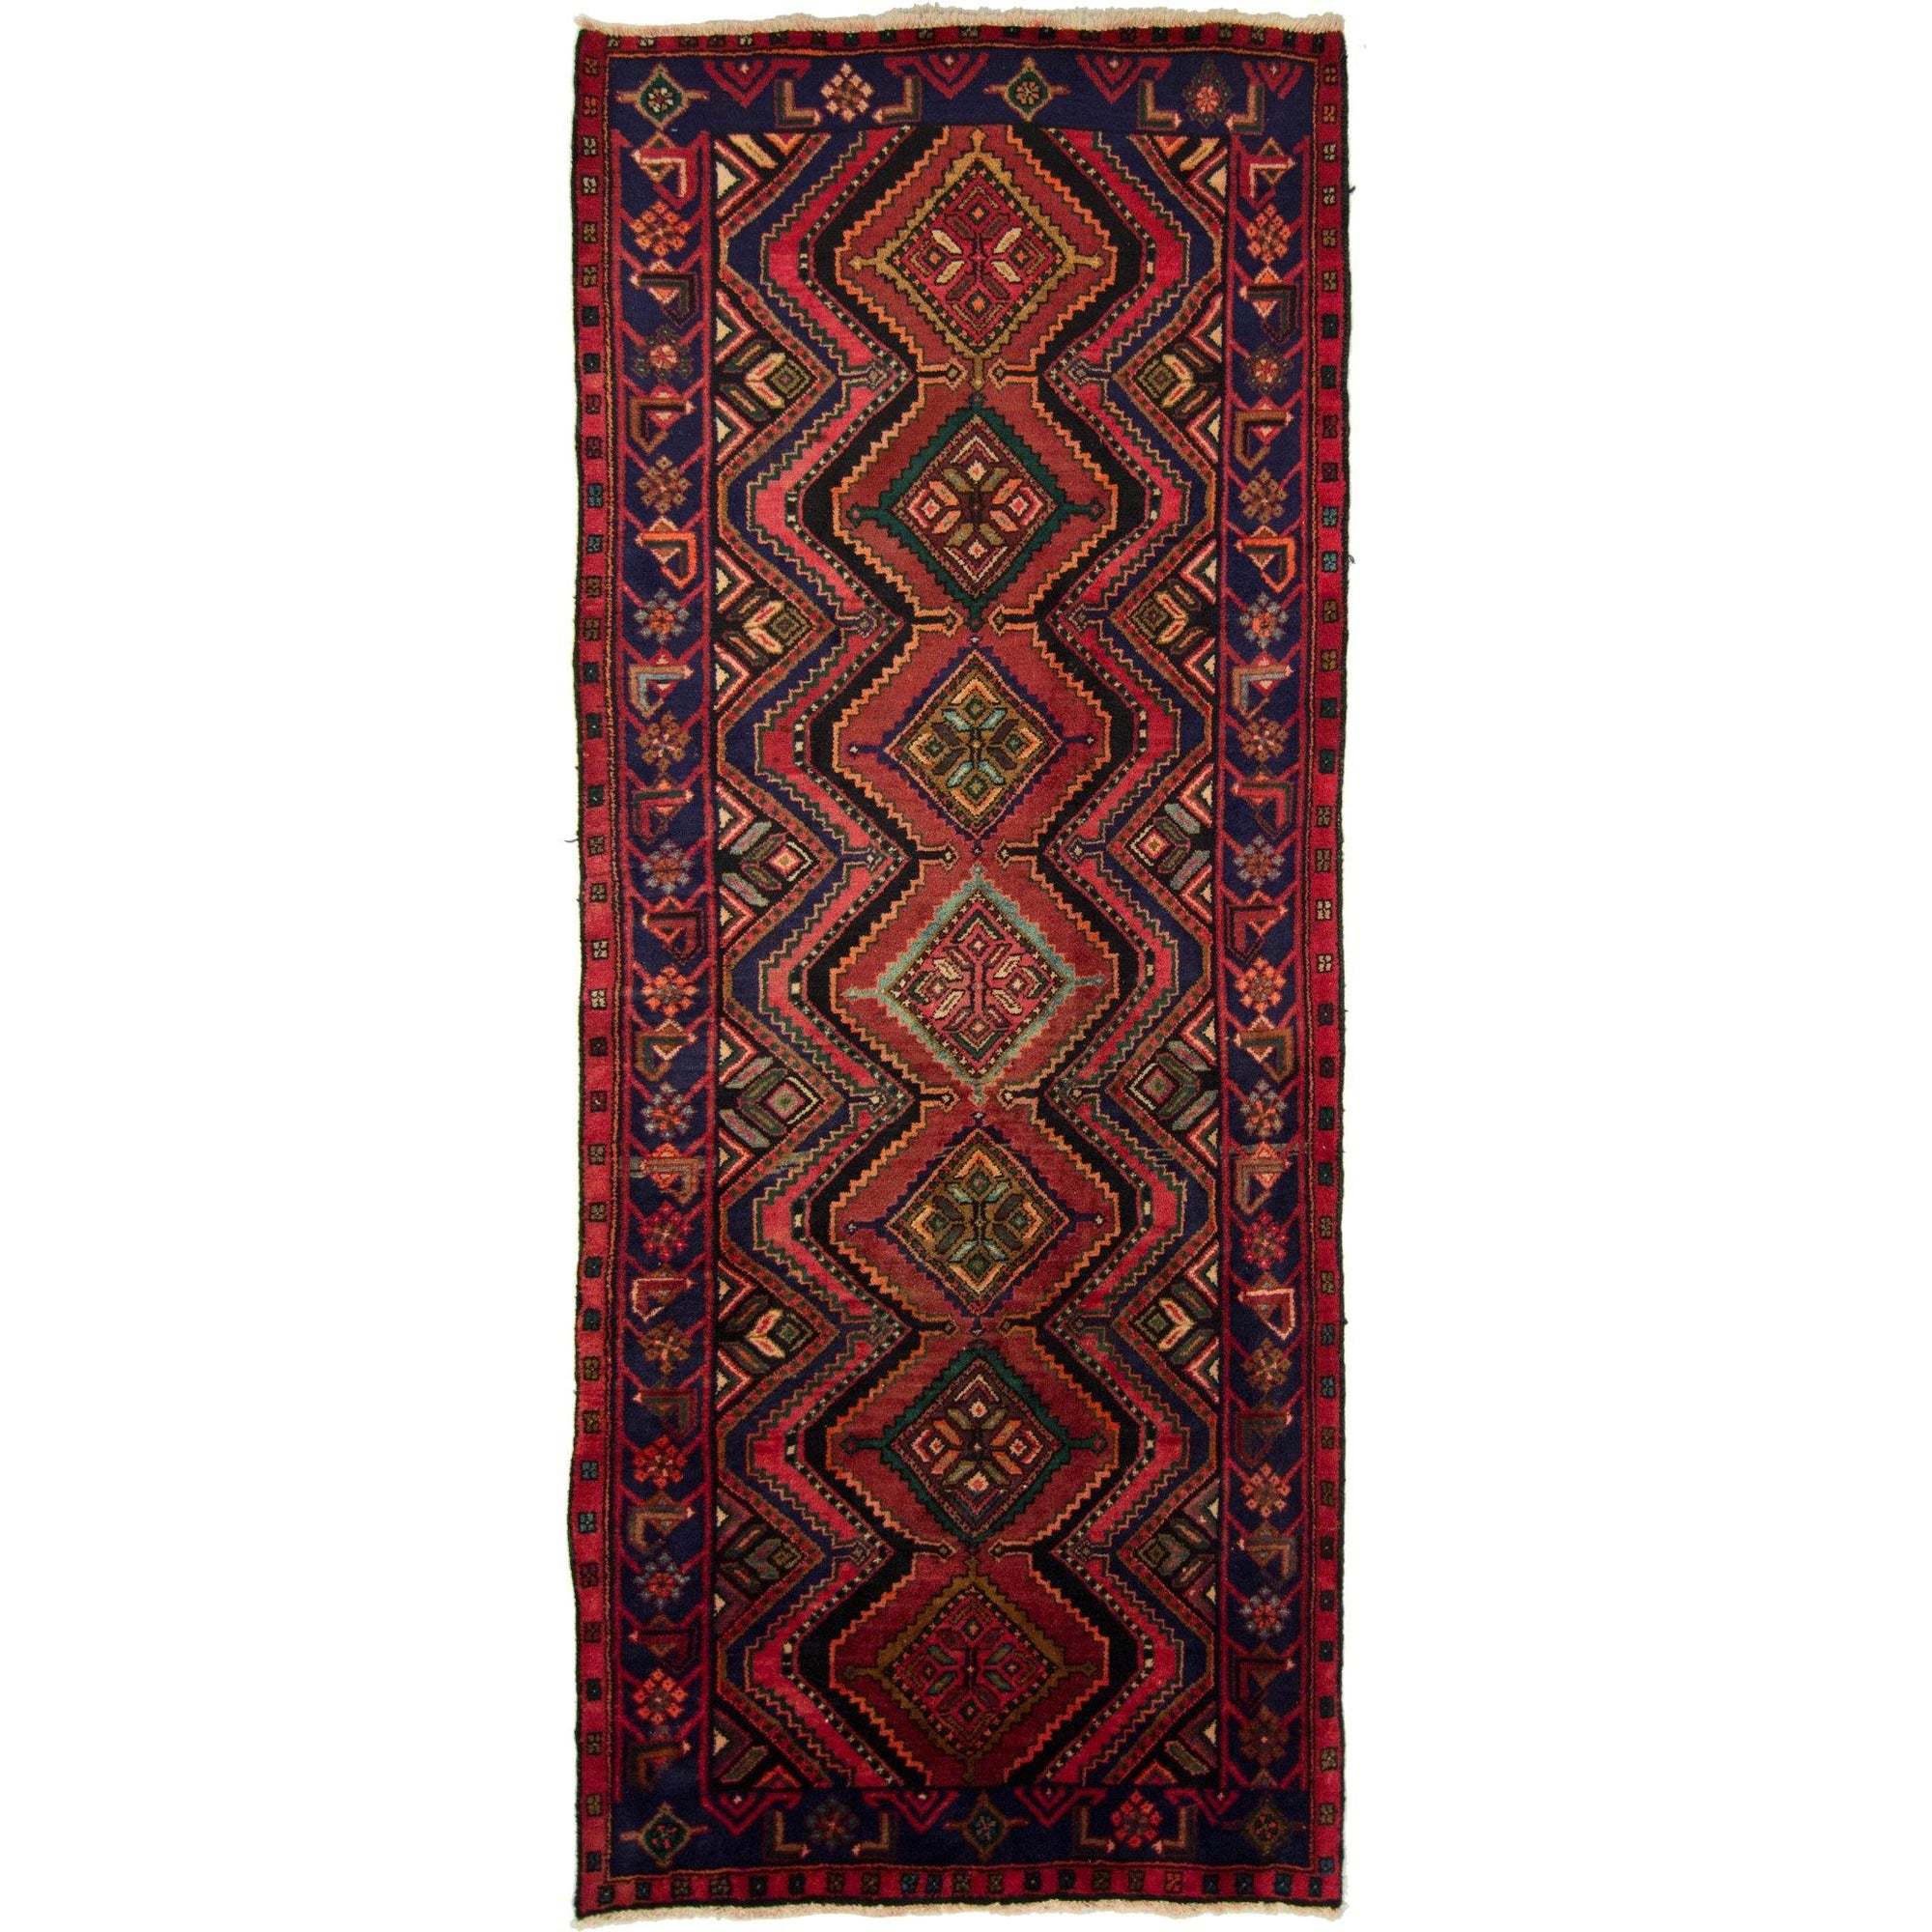 Hand-knotted Wool Tribal Persian Hamadan Runner 124cm x 293cm Persian-Rug | House-of-Haghi | NewMarket | Auckland | NZ | Handmade Persian Rugs | Hand Knotted Persian Rugs